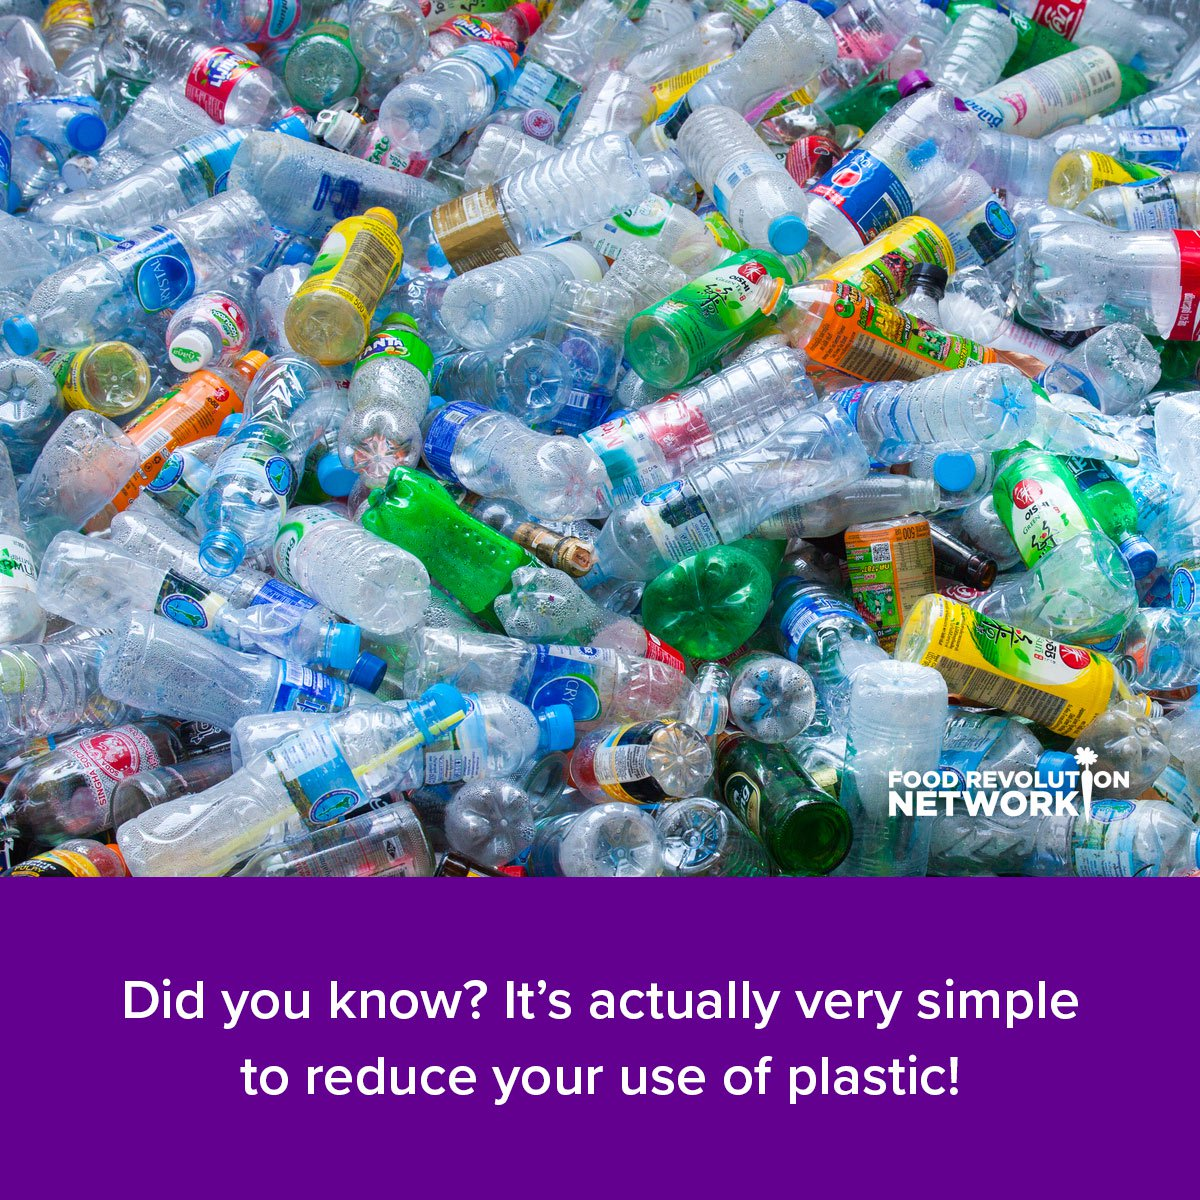 Did you know? It's actually very simple to reduce your use of plastic!